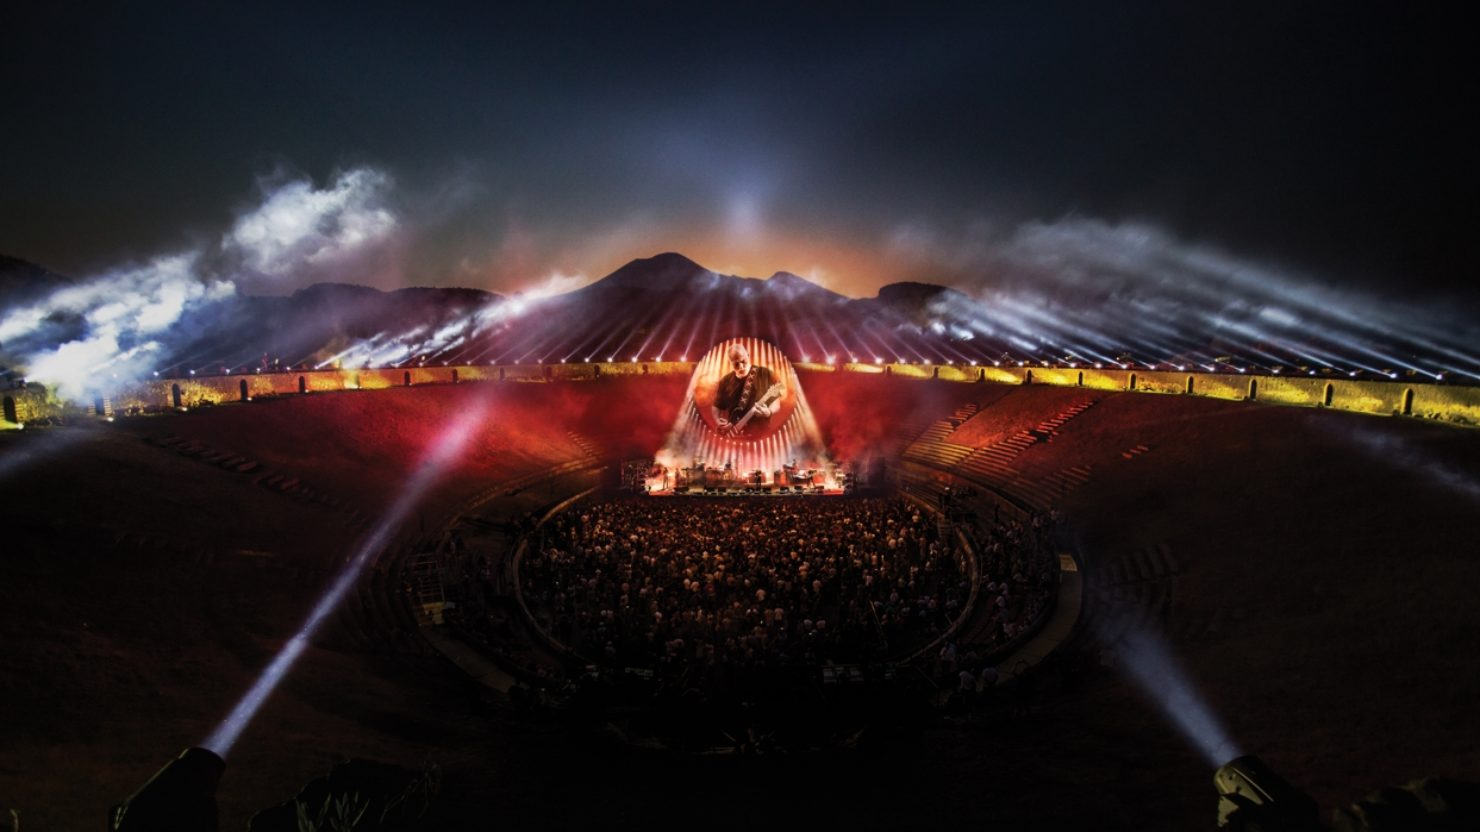 [UPDATED] David Gilmour's 'Live At Pompeii' Concert Film ...